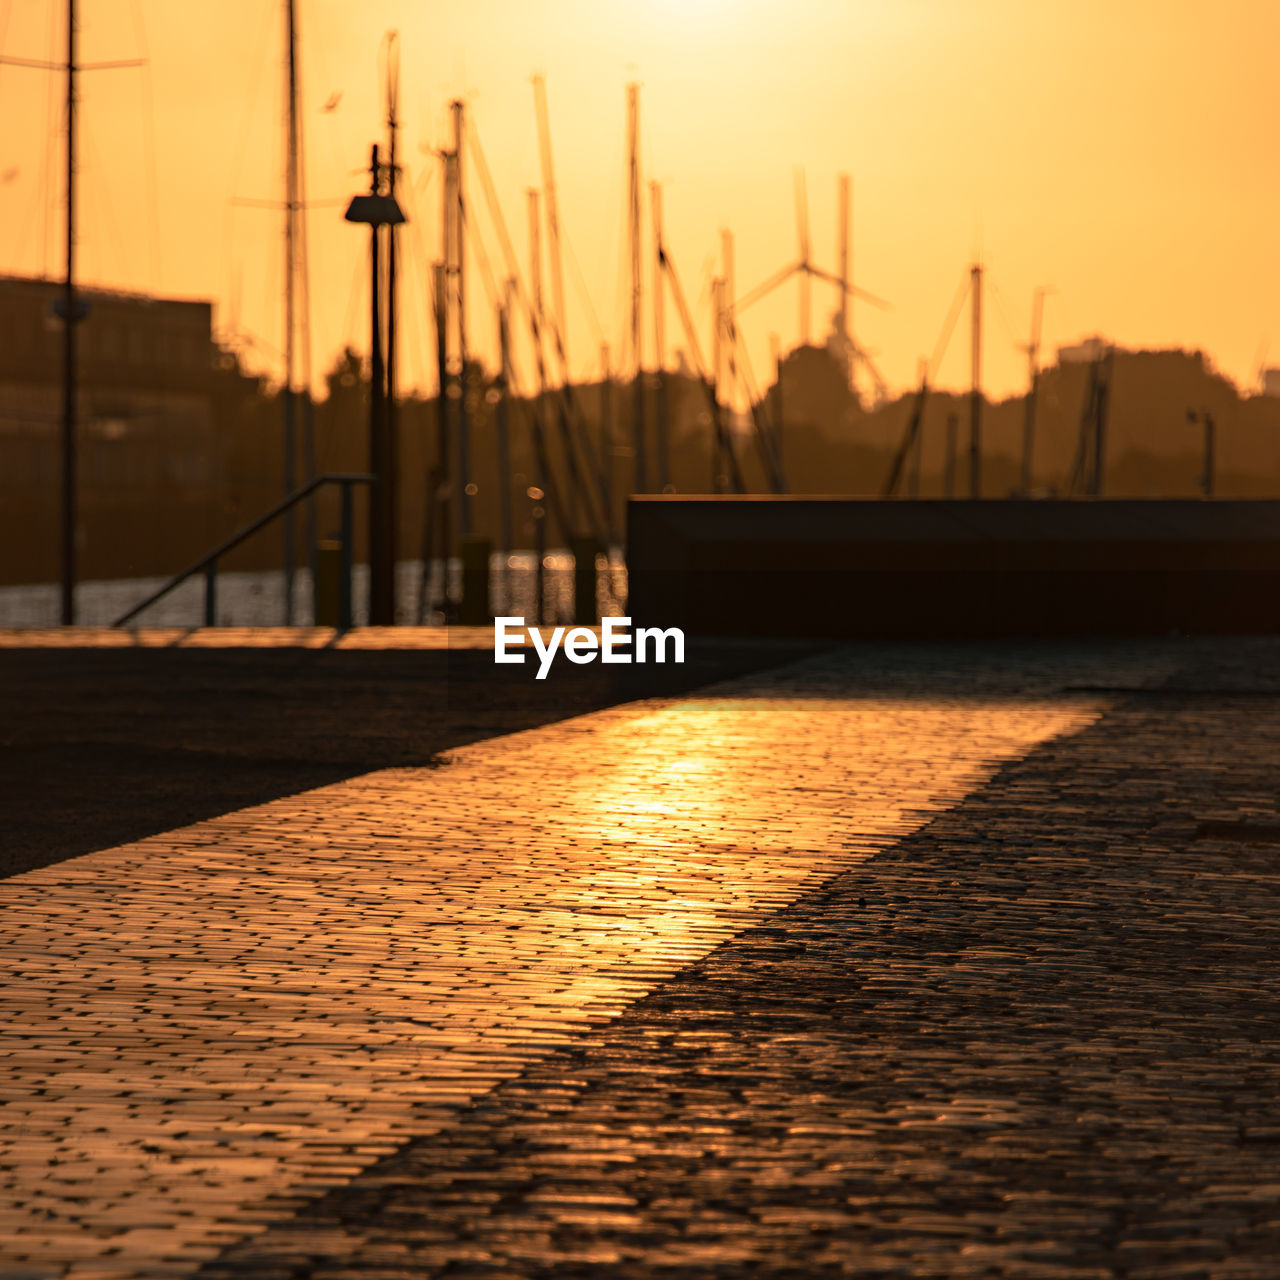 sunset, sky, water, silhouette, nature, orange color, transportation, reflection, sunlight, no people, outdoors, architecture, built structure, sun, nautical vessel, focus on foreground, harbor, beauty in nature, sea